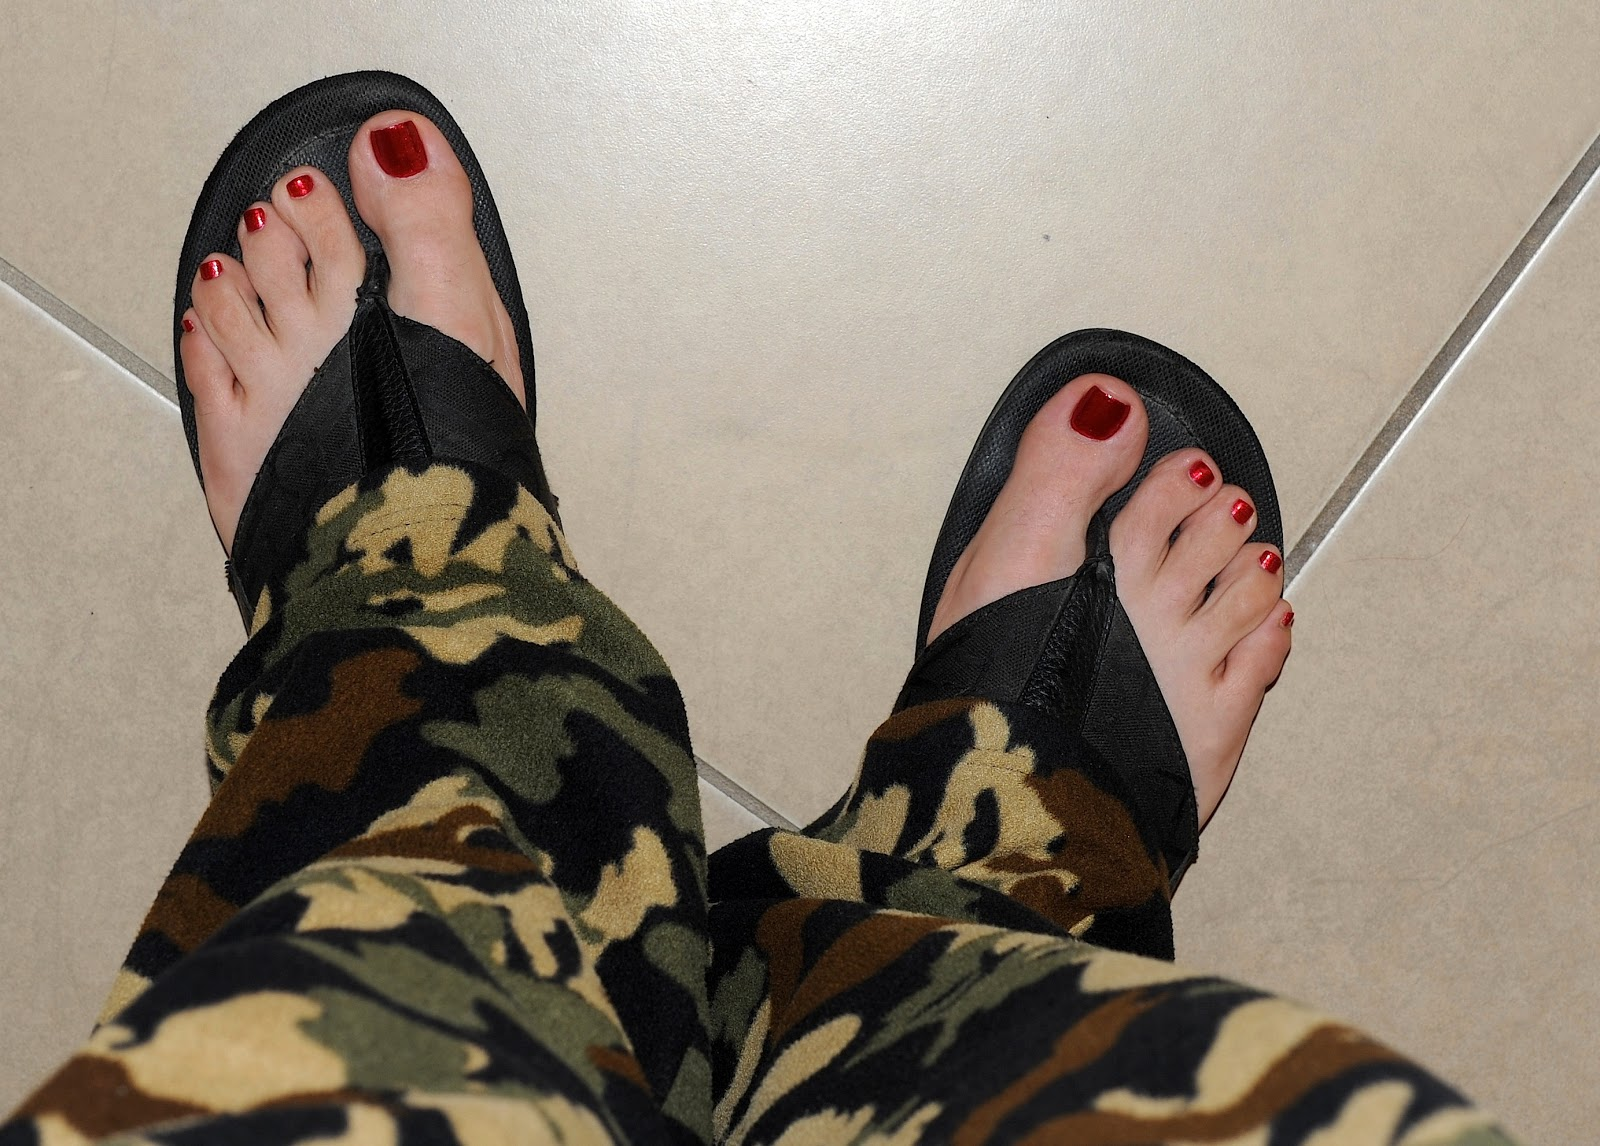 Men can wear nail polish: How did I start wearing nail polish and why?